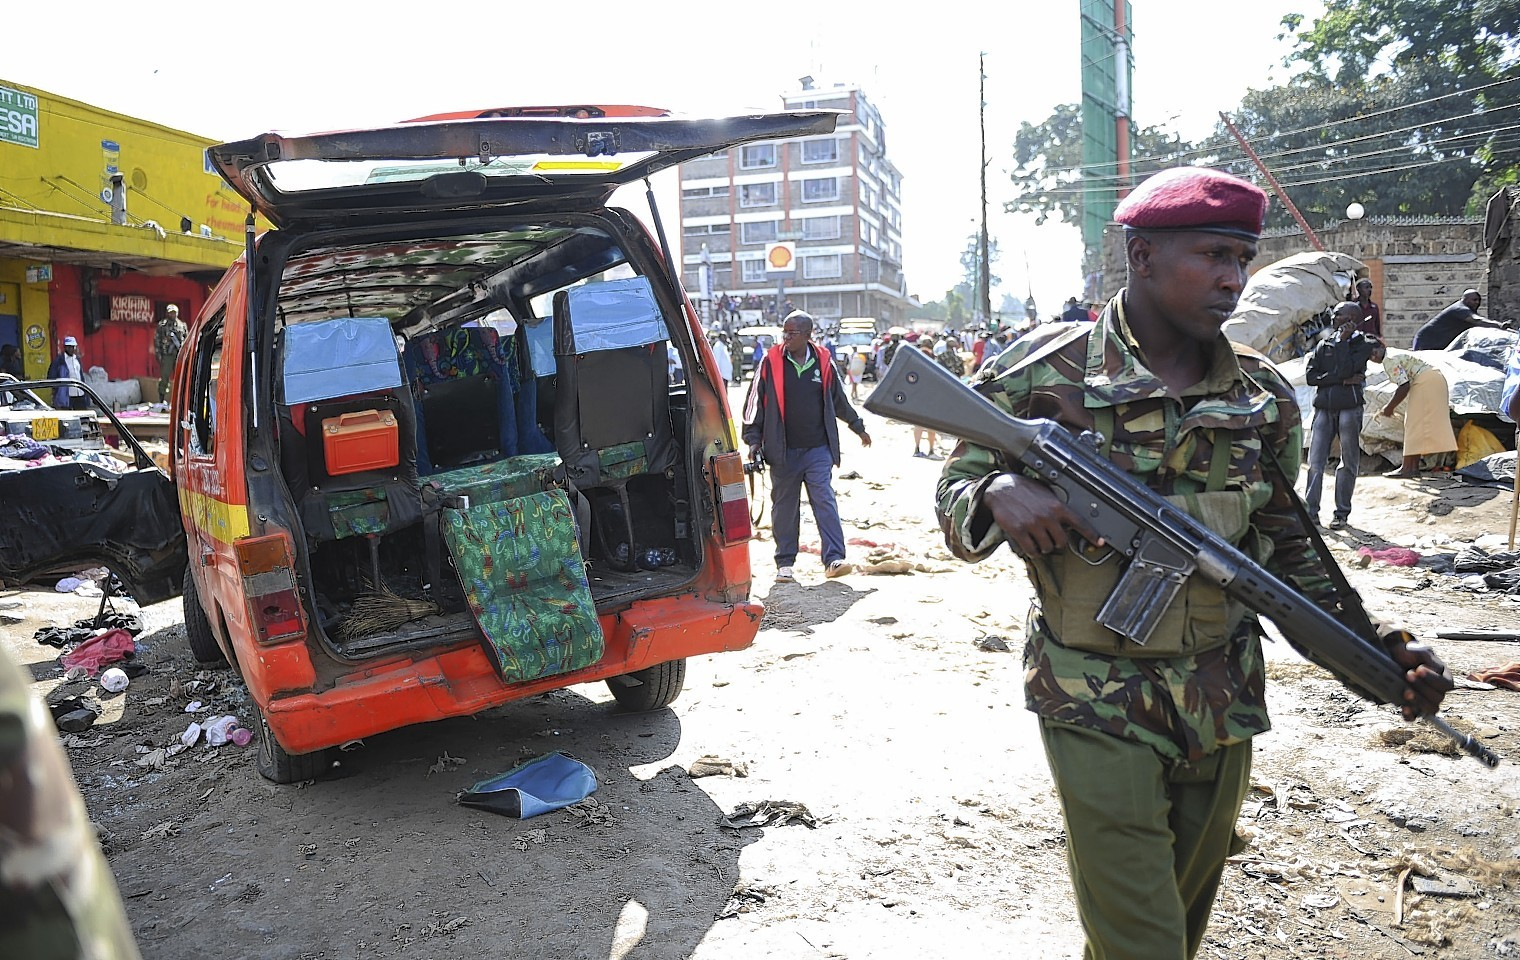 A member of the security forces patrols at the site where two blasts detonated, one in a mini-van used for public transportation, in a market area of Nairobi, Kenya